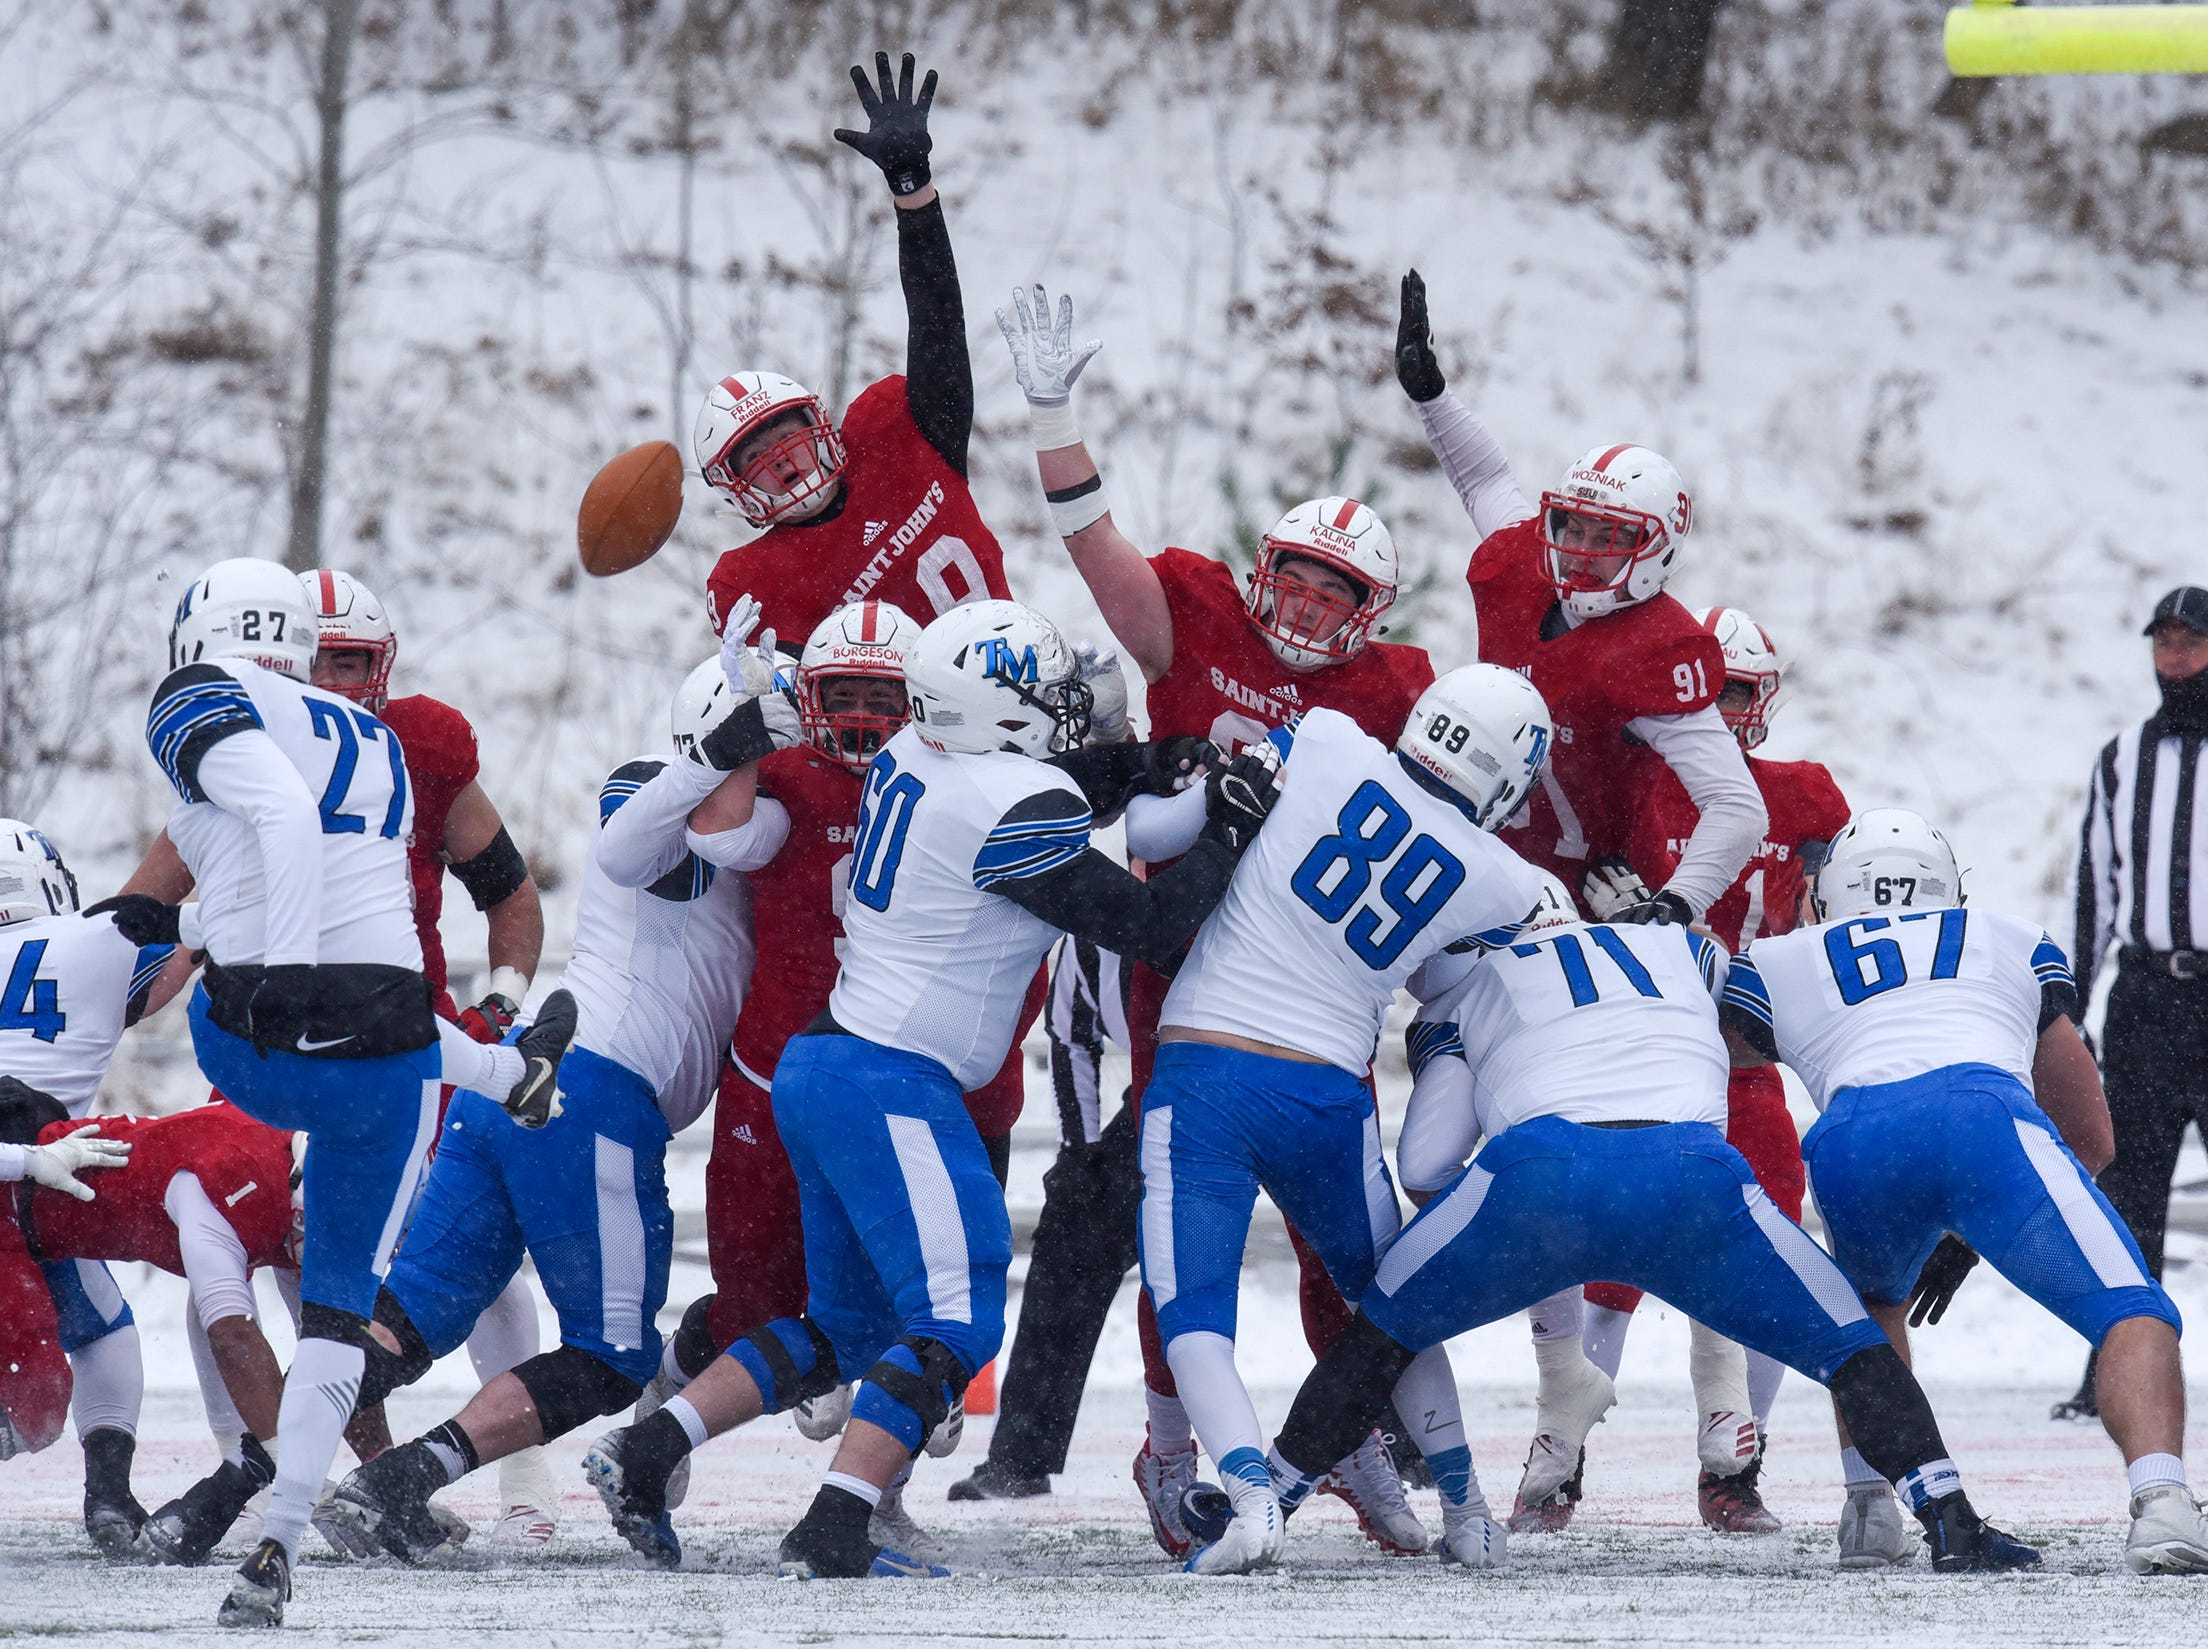 St. John's players leap in an attempt to block a kick during the first half of the Saturday, Nov. 10, game against Thomas More University at Clemens Stadium in Collegeville.